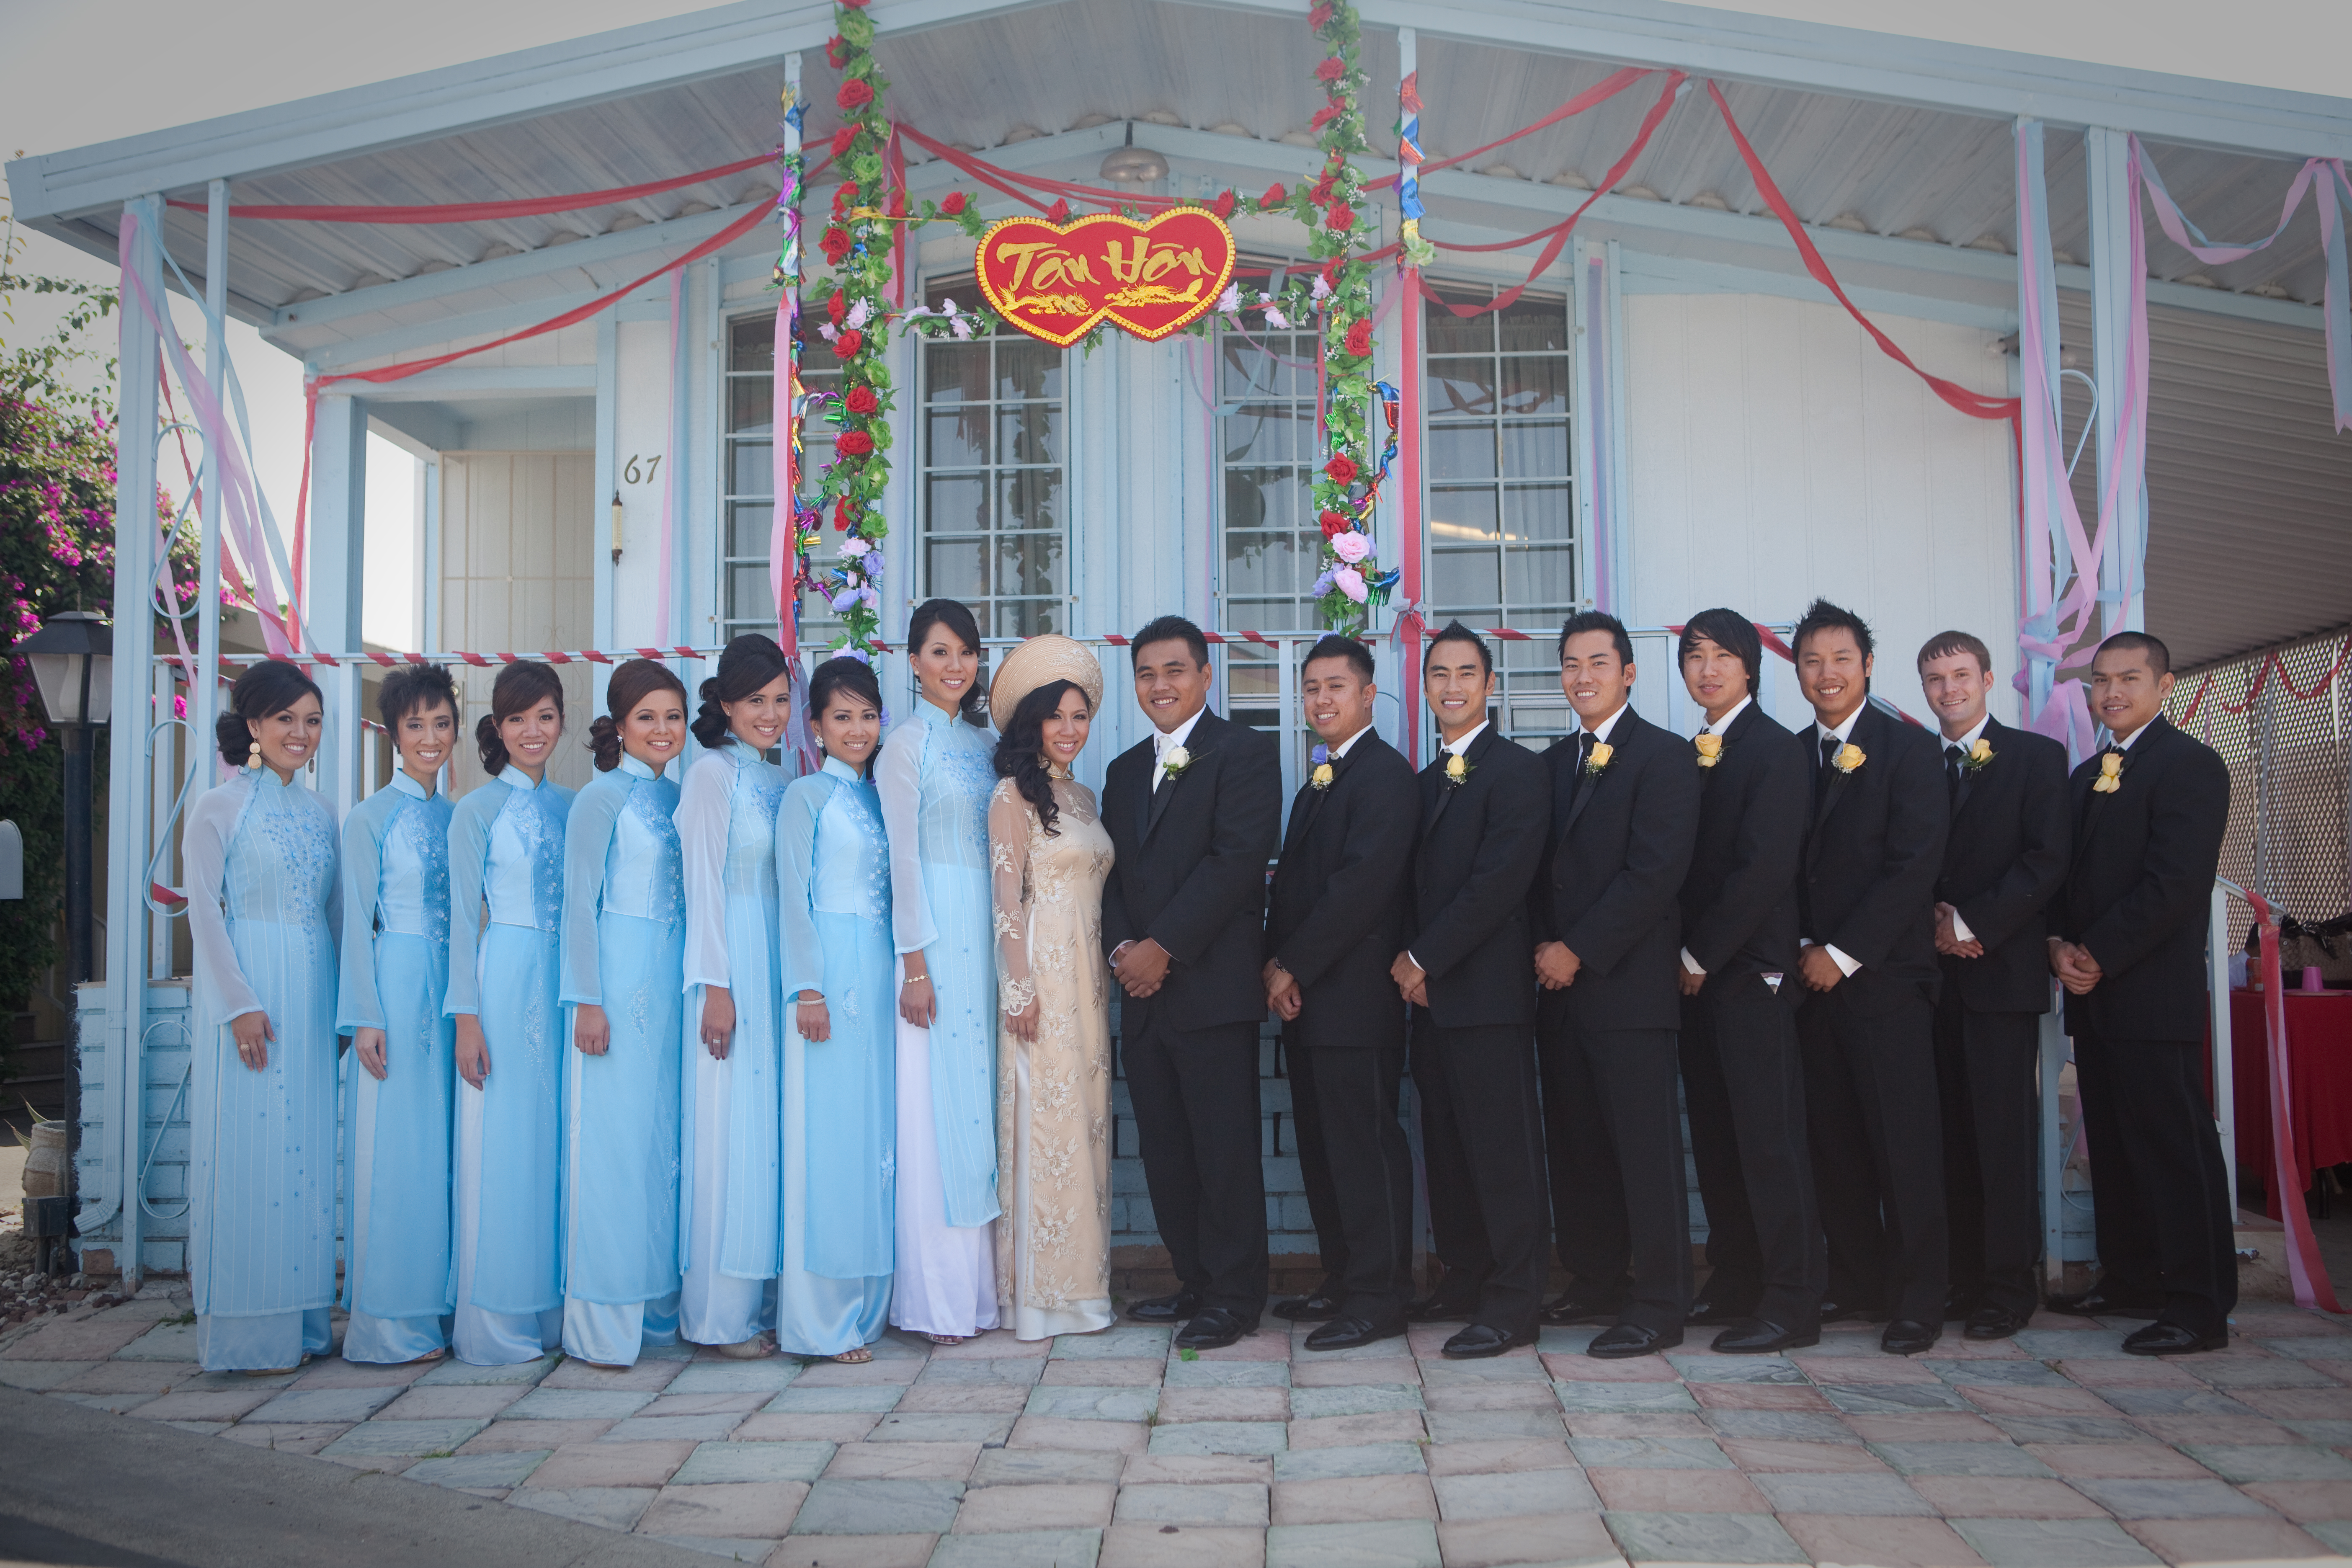 Bridal Party Outfits | Tammy and Phat\'s Wedding Blog